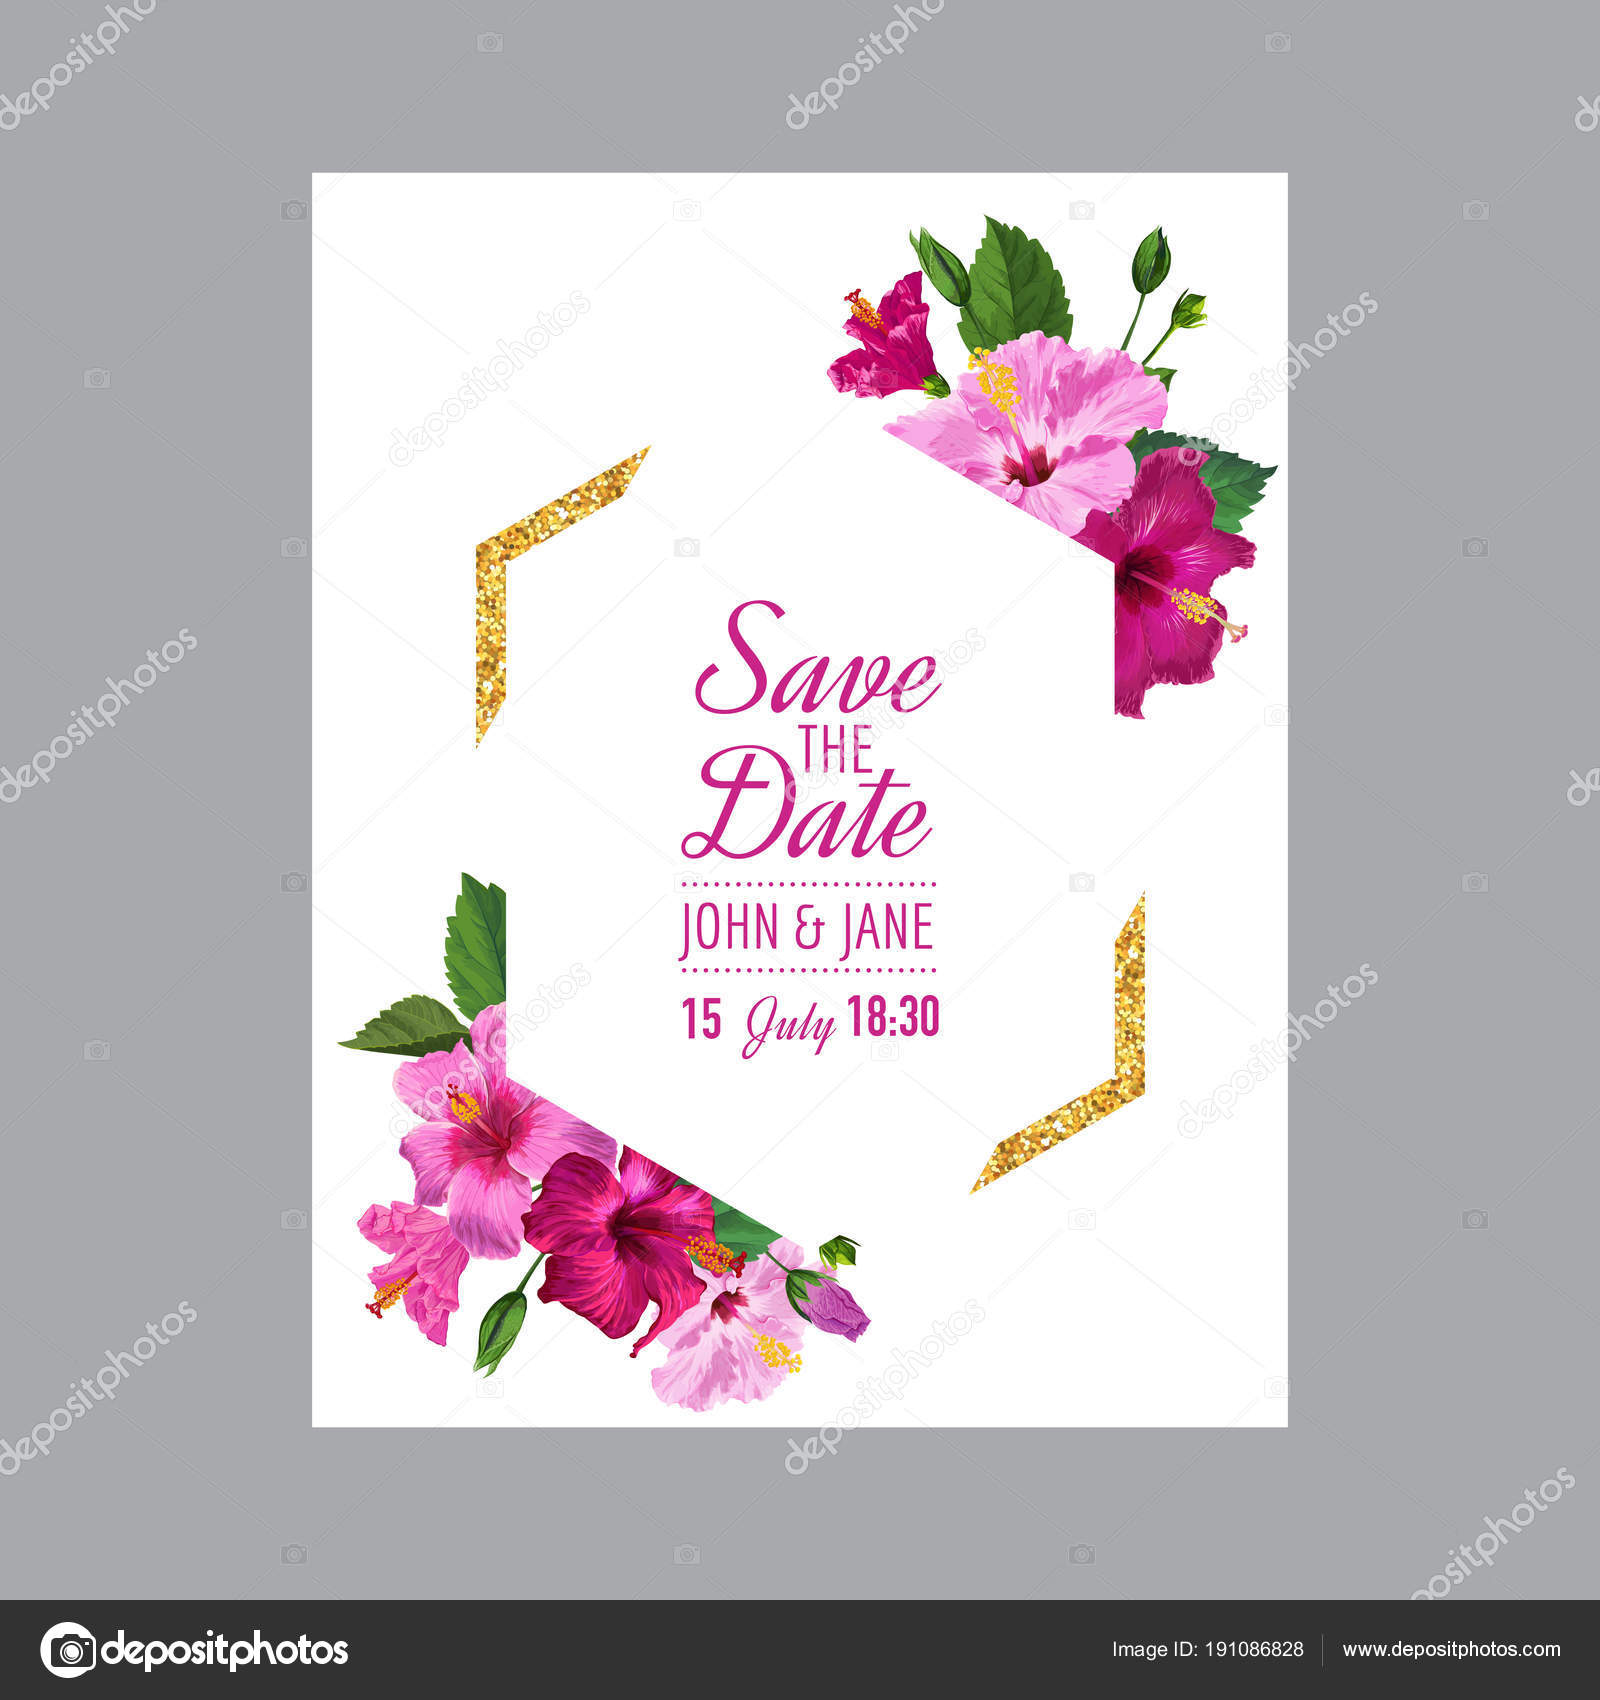 Wedding invitation template with blooming hibiscus flowers and wedding invitation template with blooming hibiscus flowers and golden frame save the date floral card for greetings anniversary birthday m4hsunfo